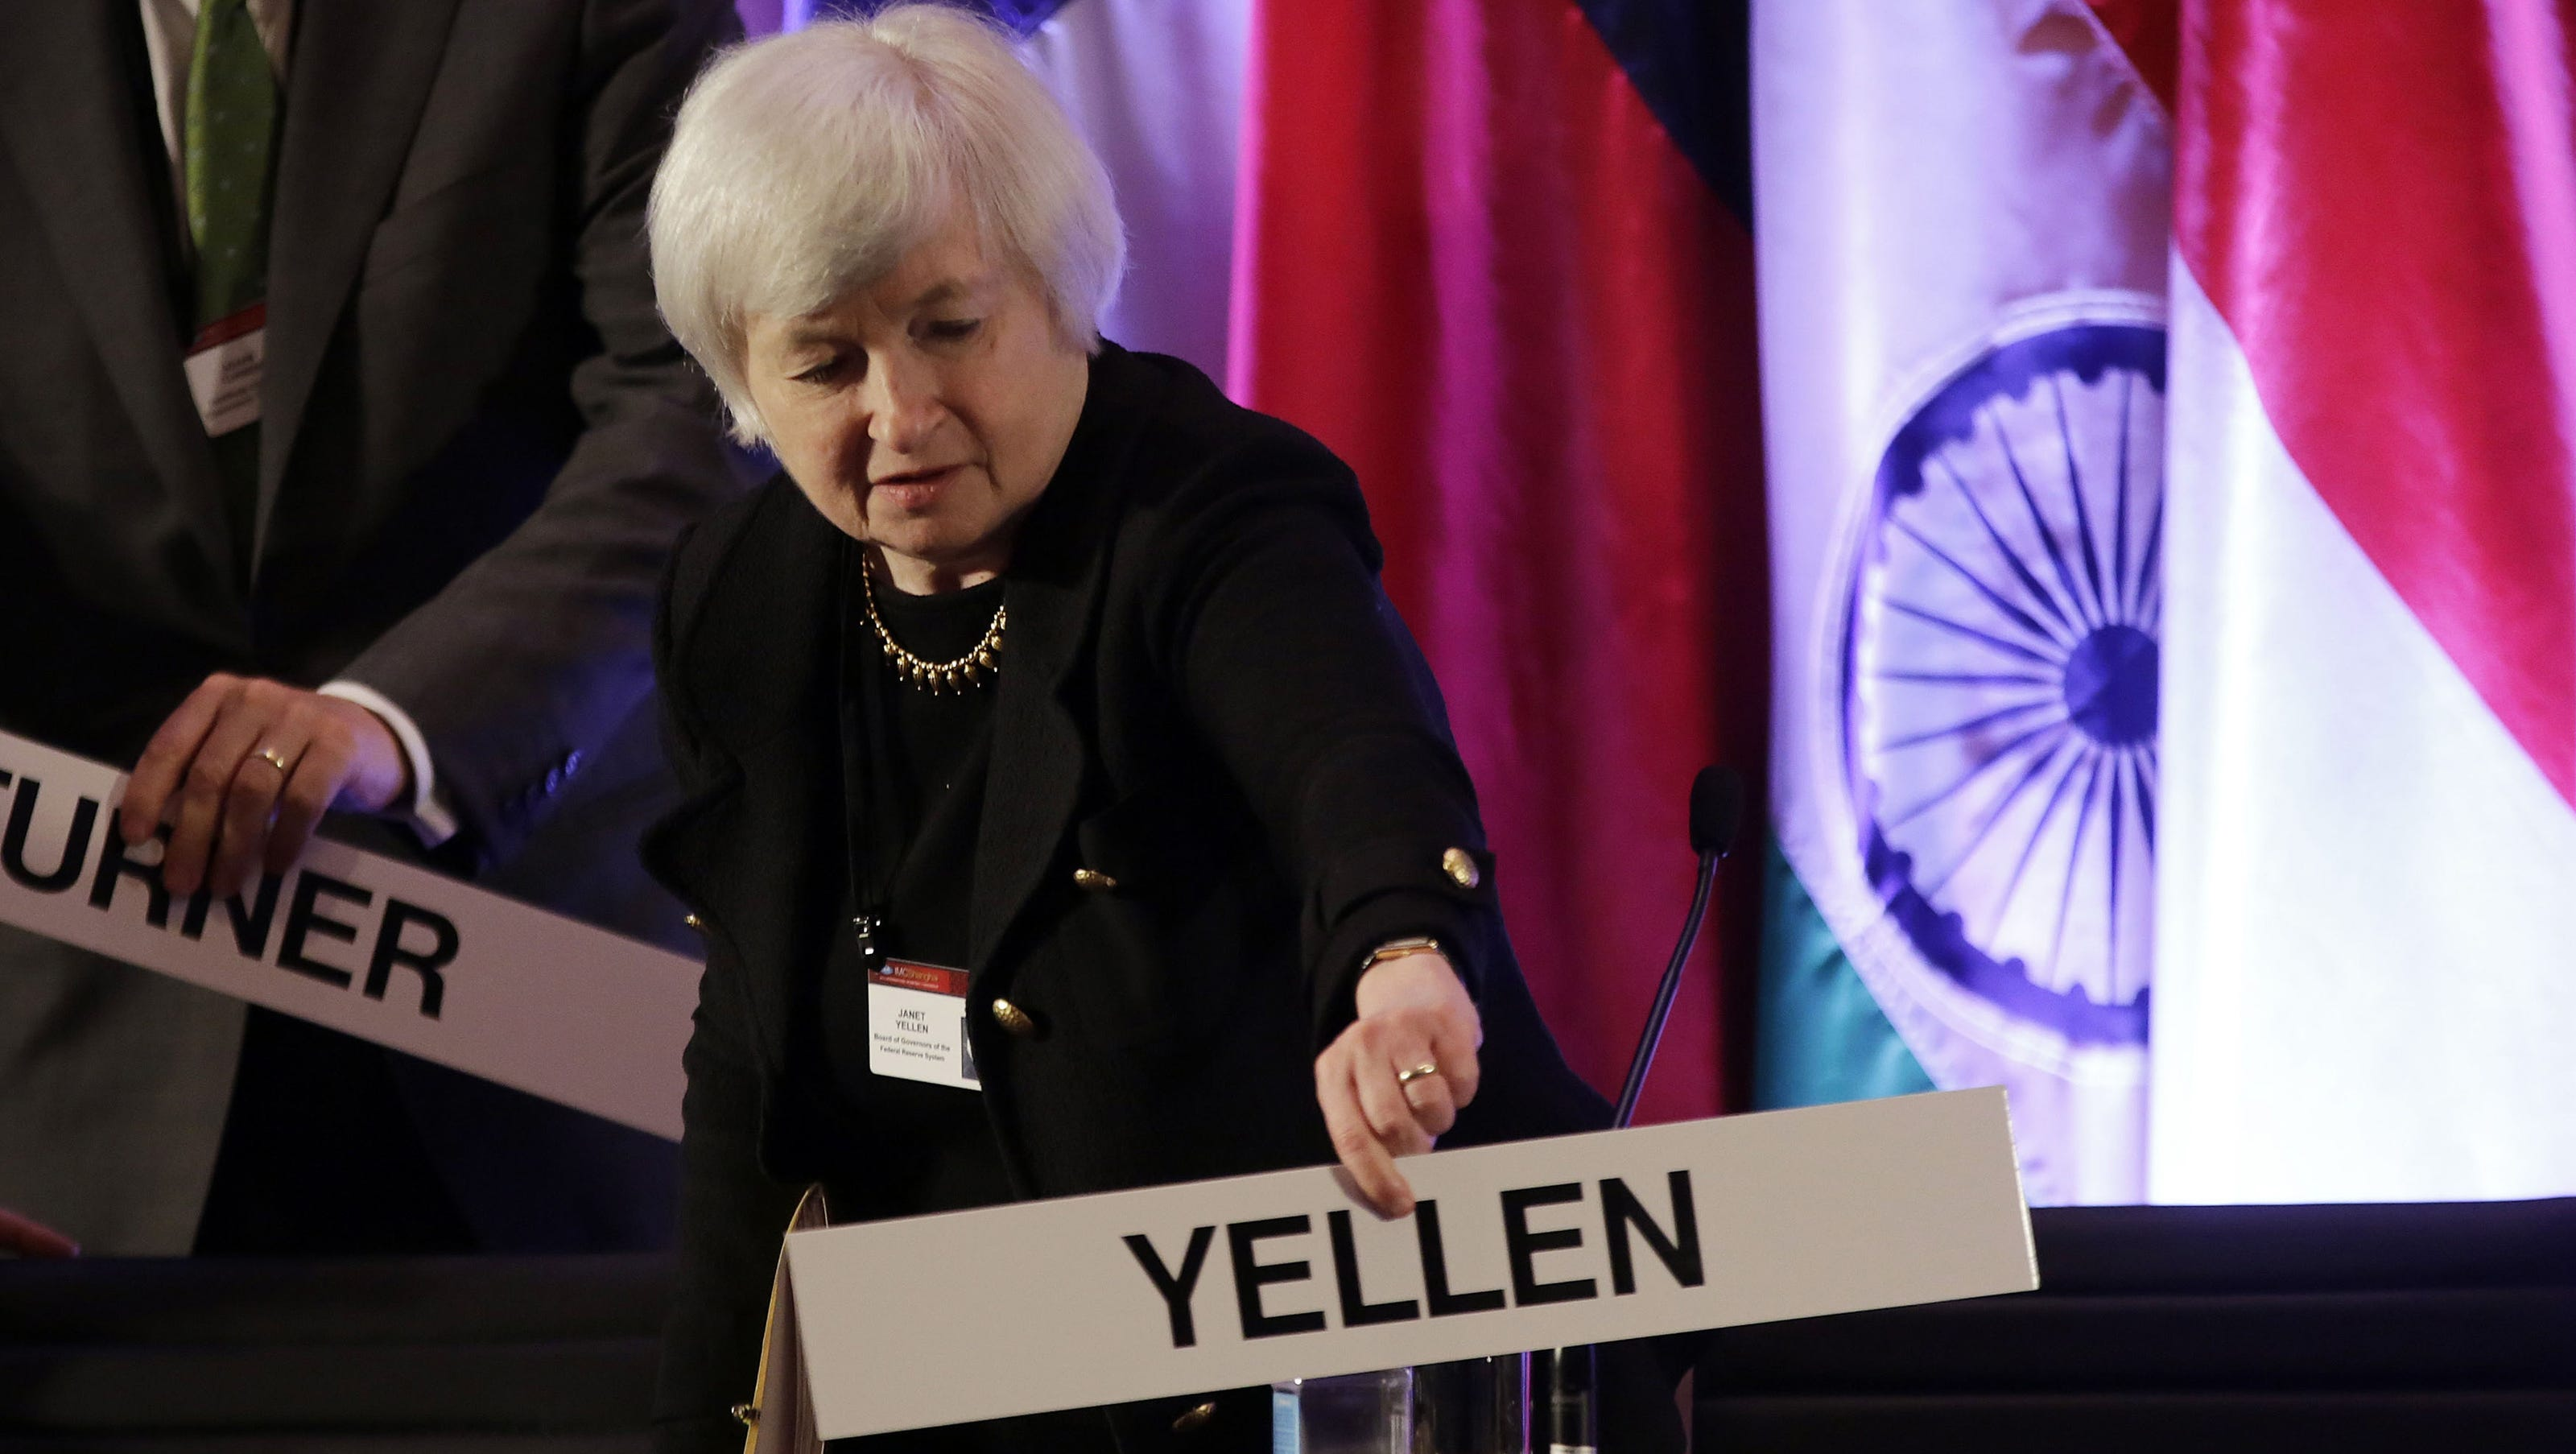 obama to nominate yellen for fed chair obama to nominate yellen for fed chair